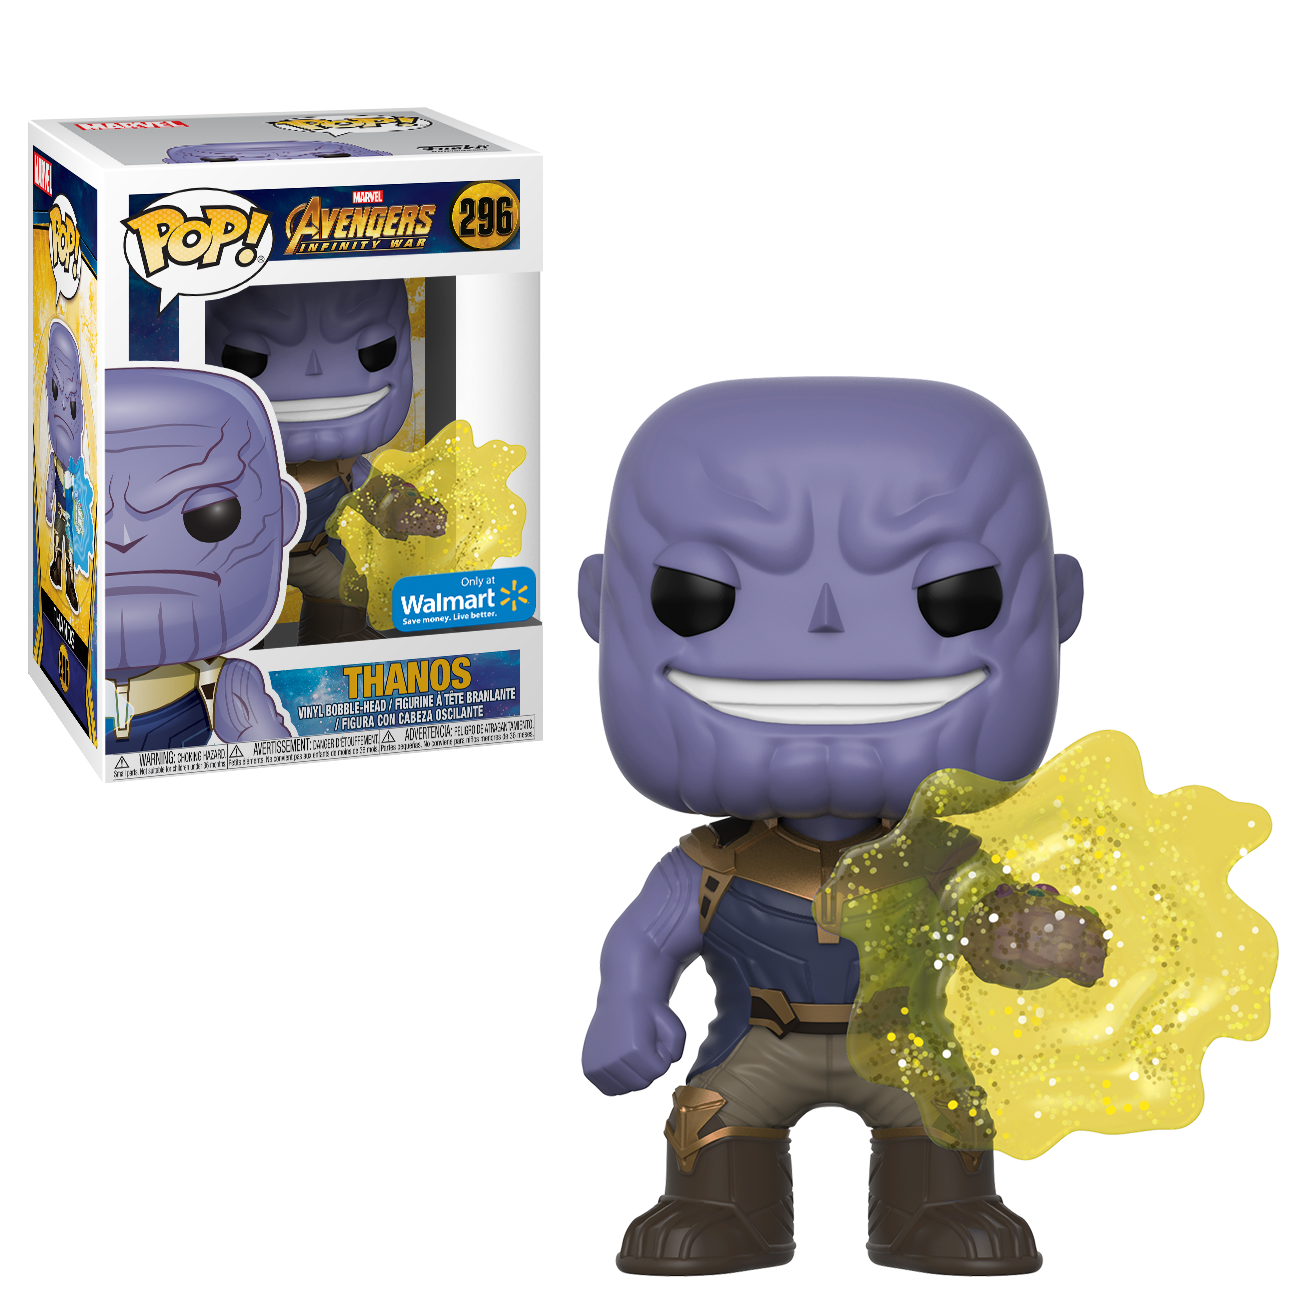 POP! Marvel: Avengers Infinity War - Thanos - Walmart Exclusive